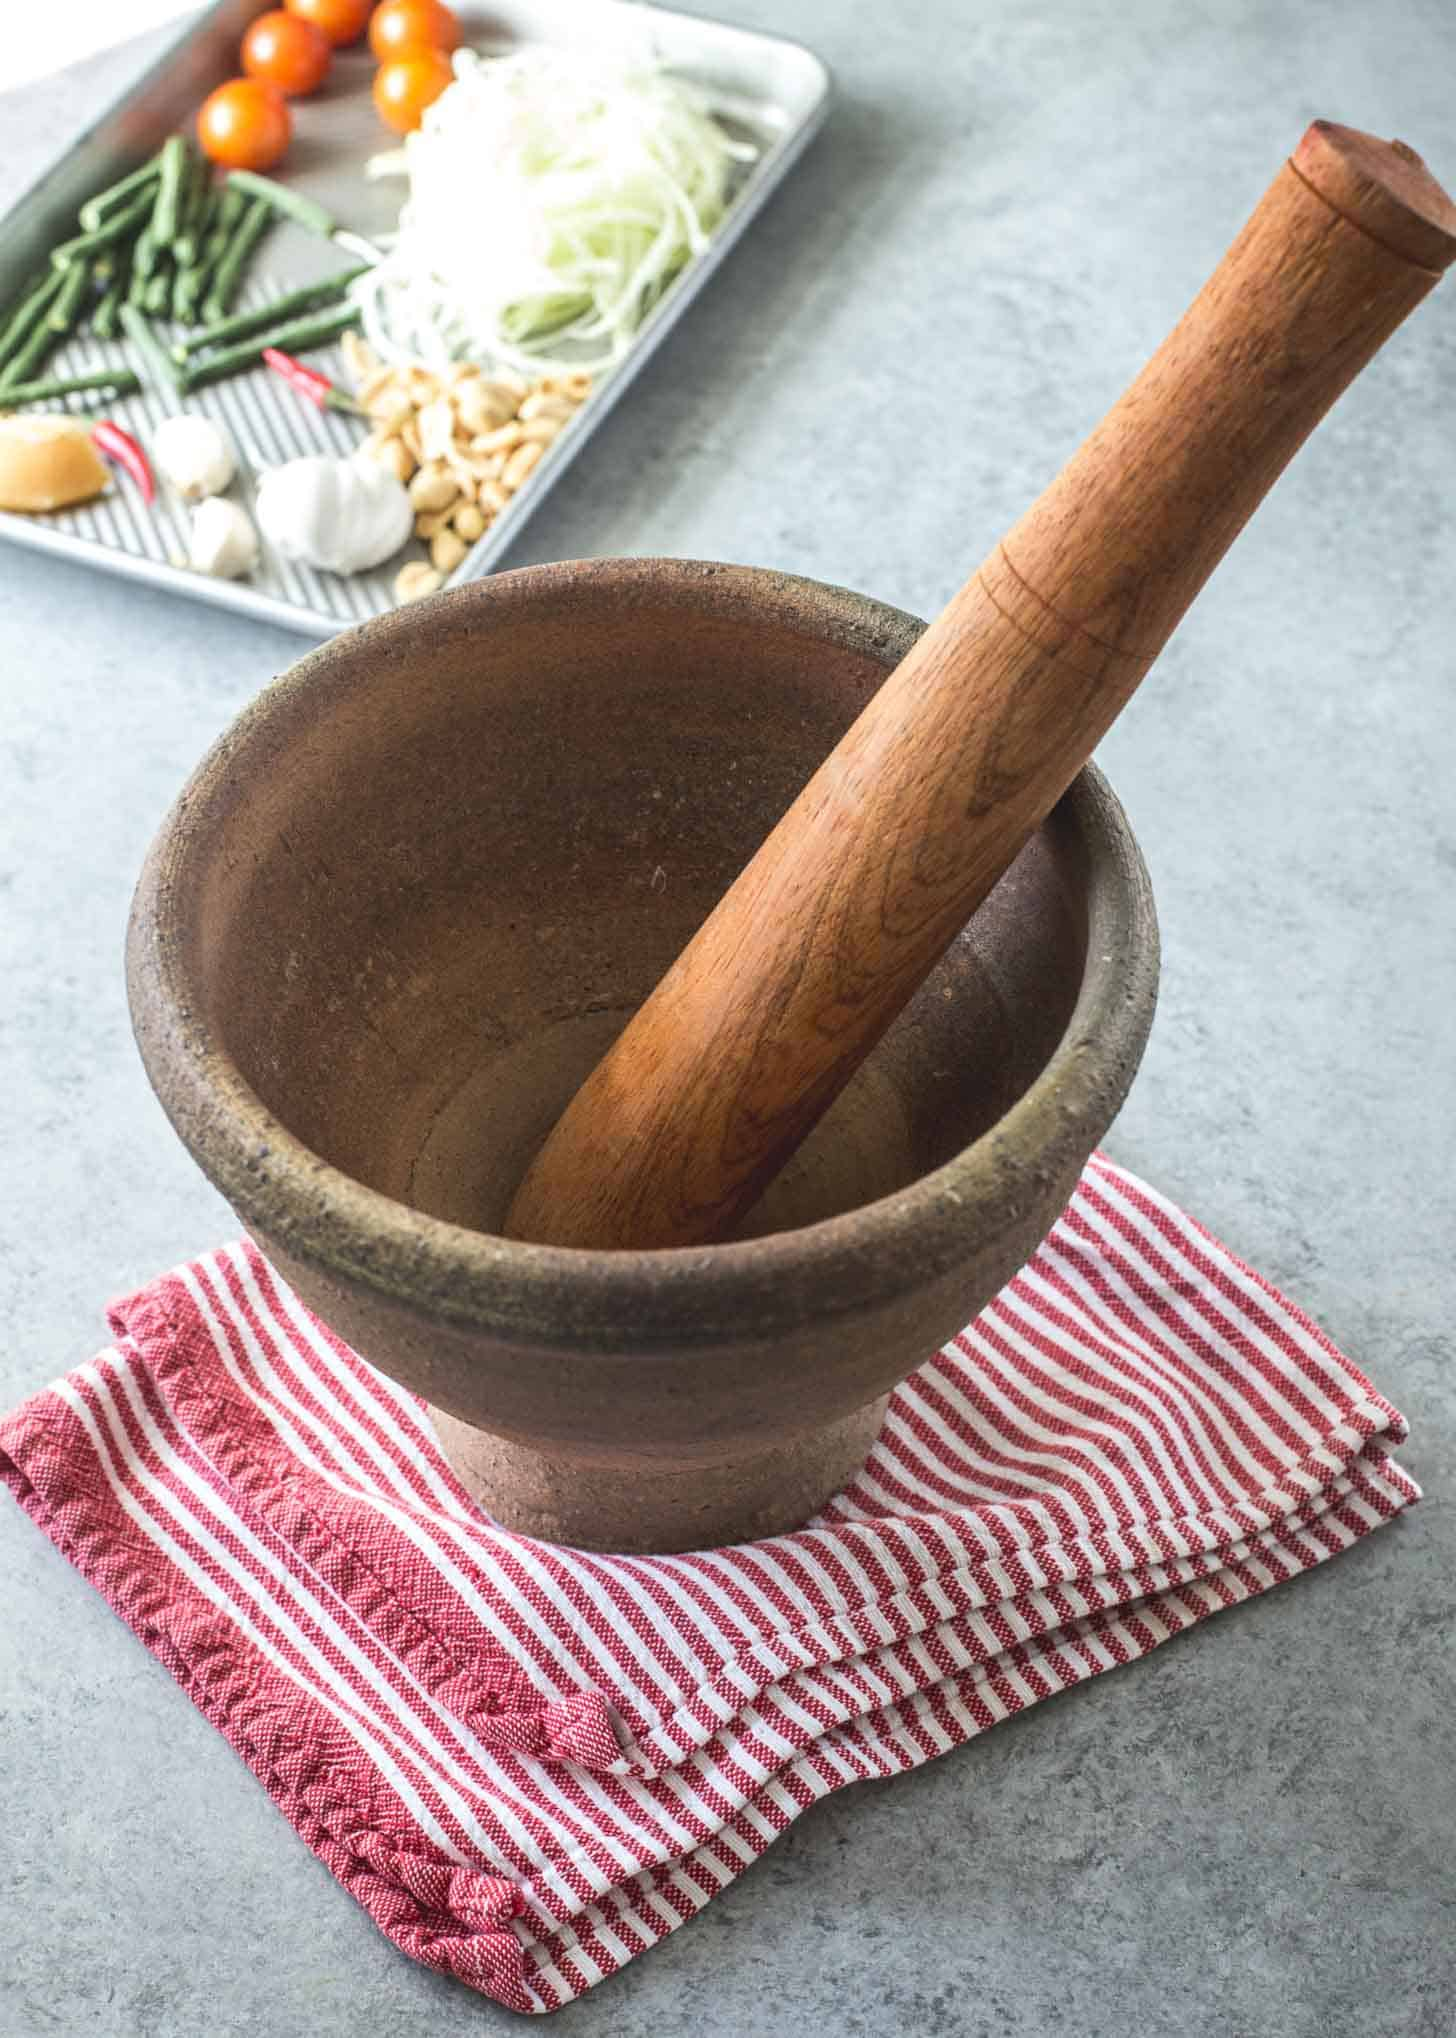 Thai mortar and pestle on a white table